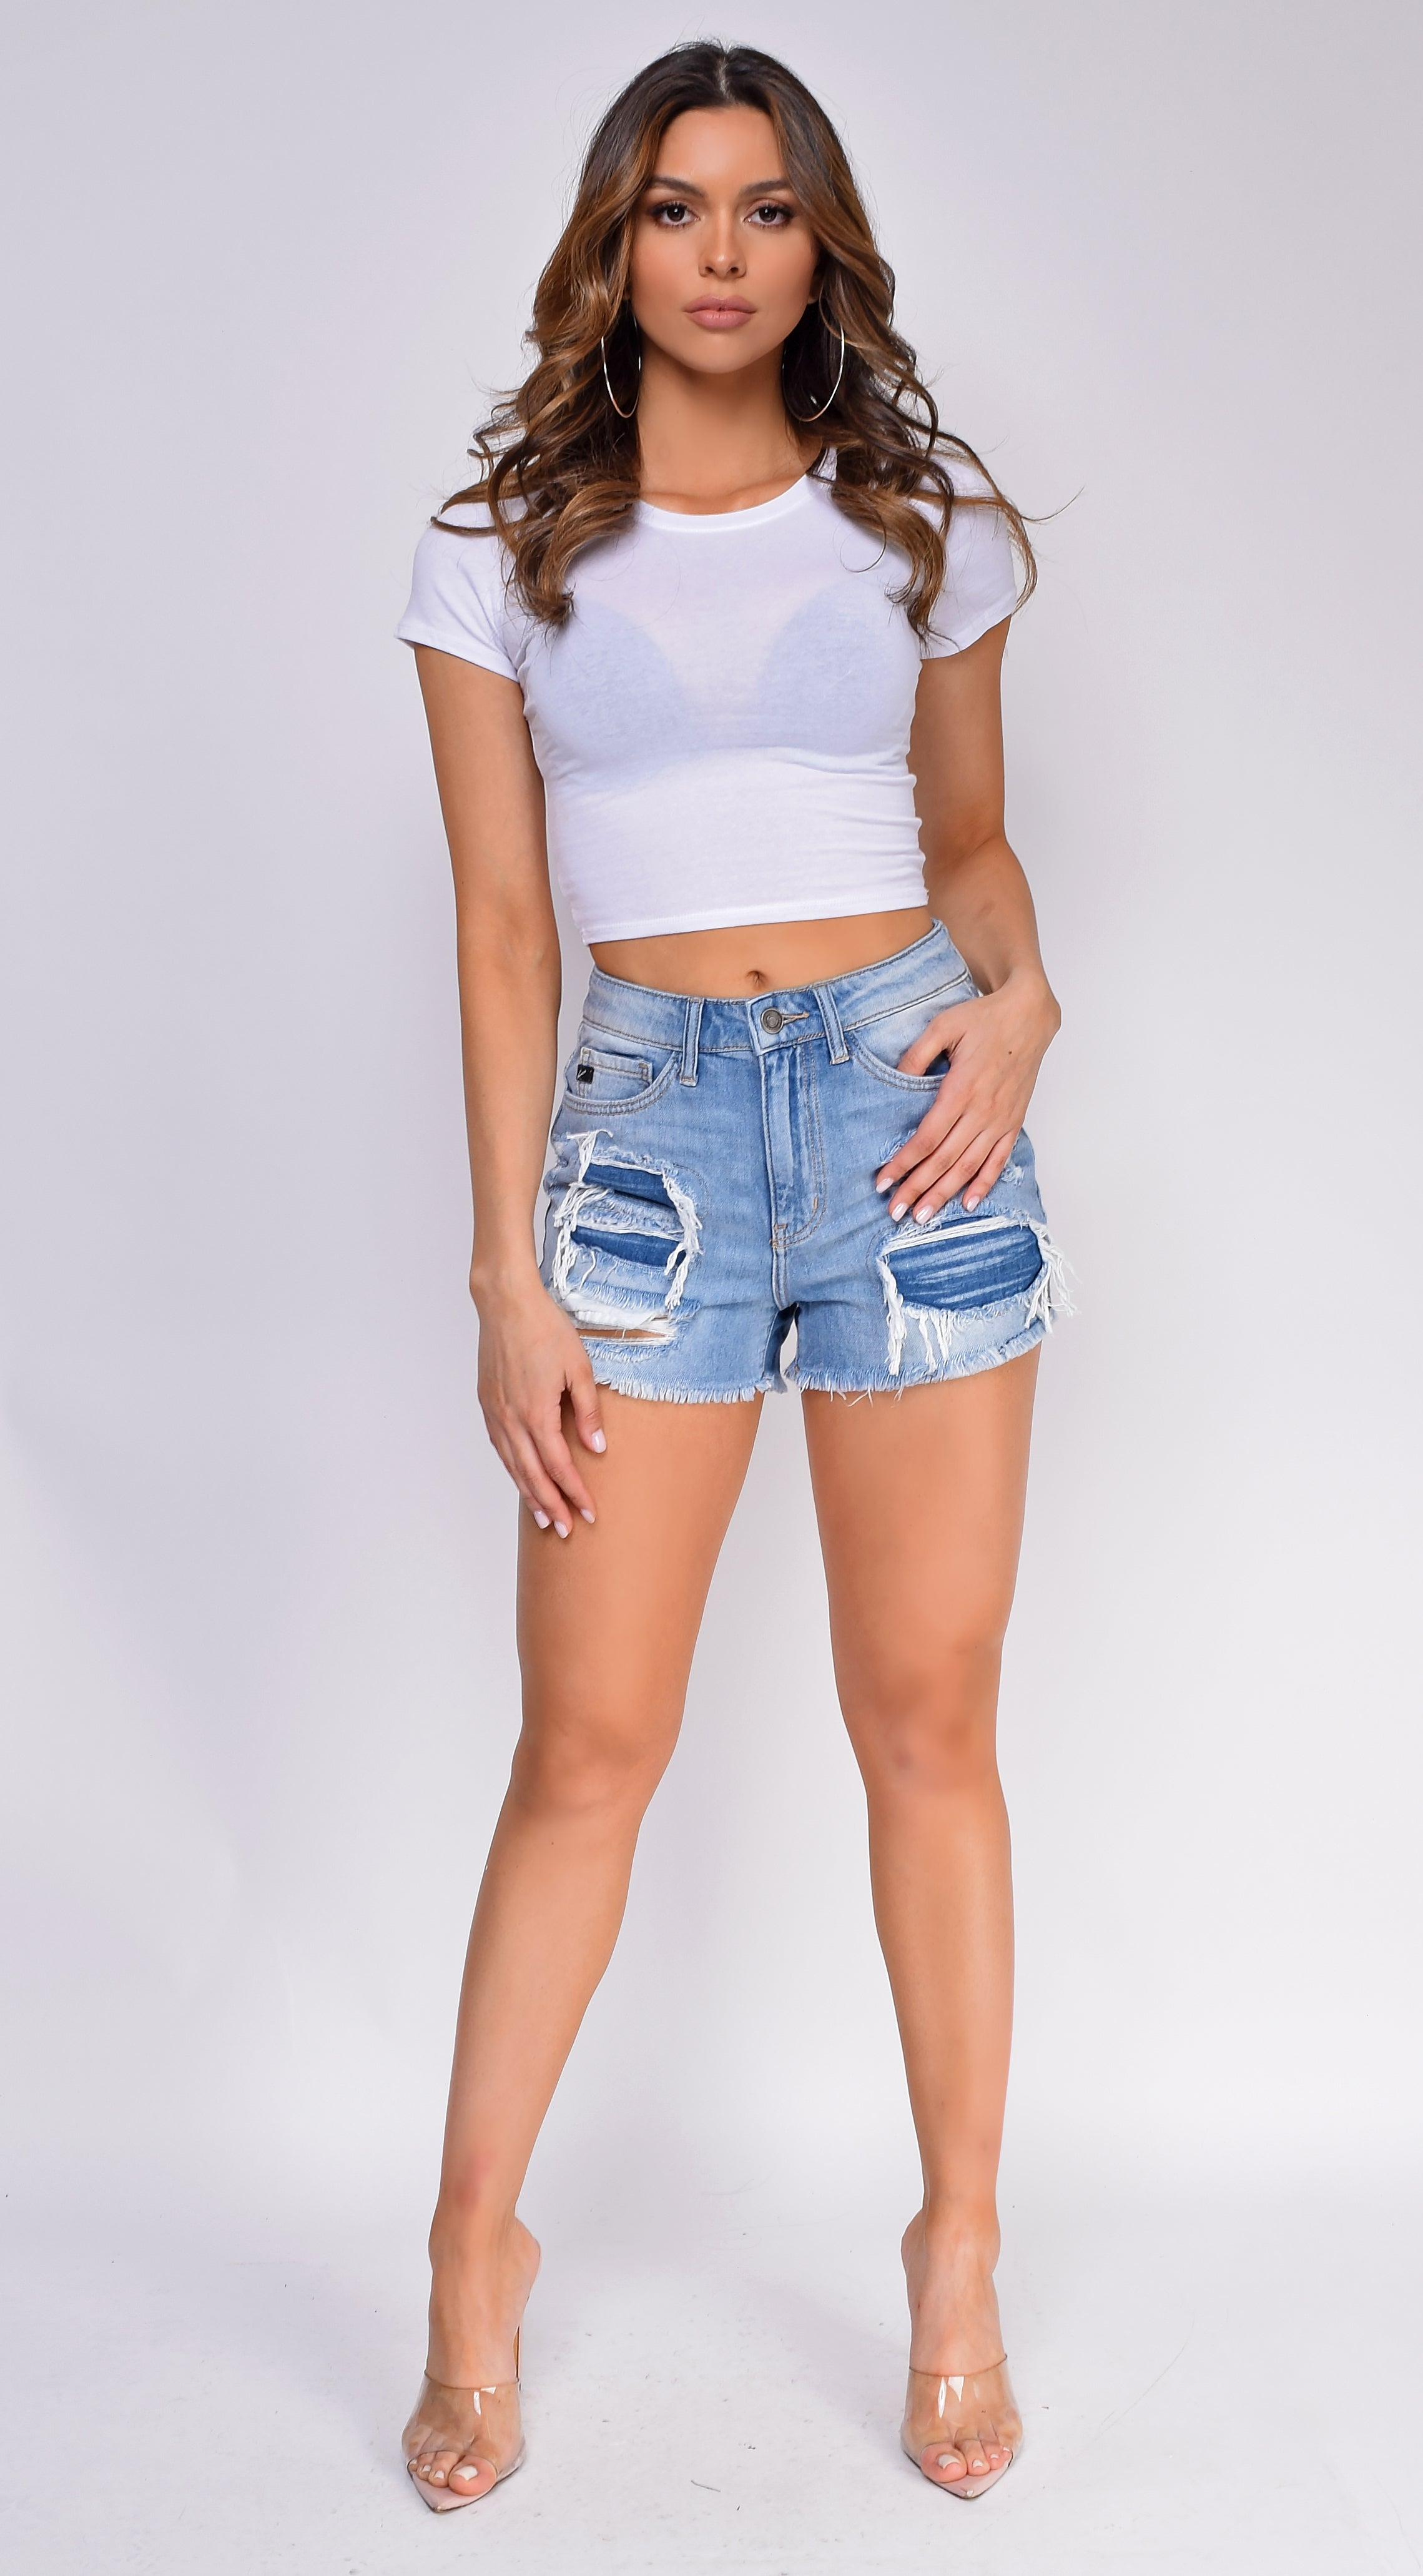 Tess White Scoop Neck Short Sleeve Crop Top